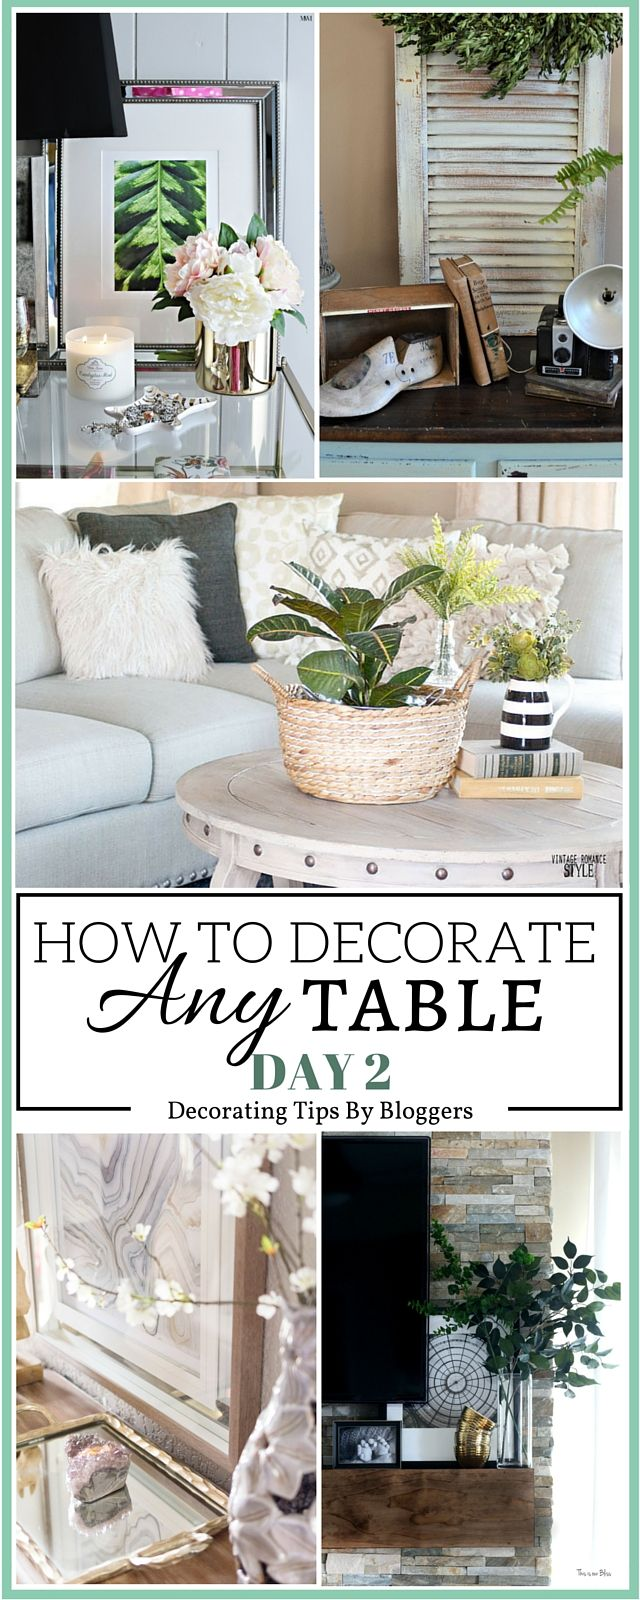 Learn about 5 must have decor items to make any end table perfectly styled, curated and functional via monicawantsit.com